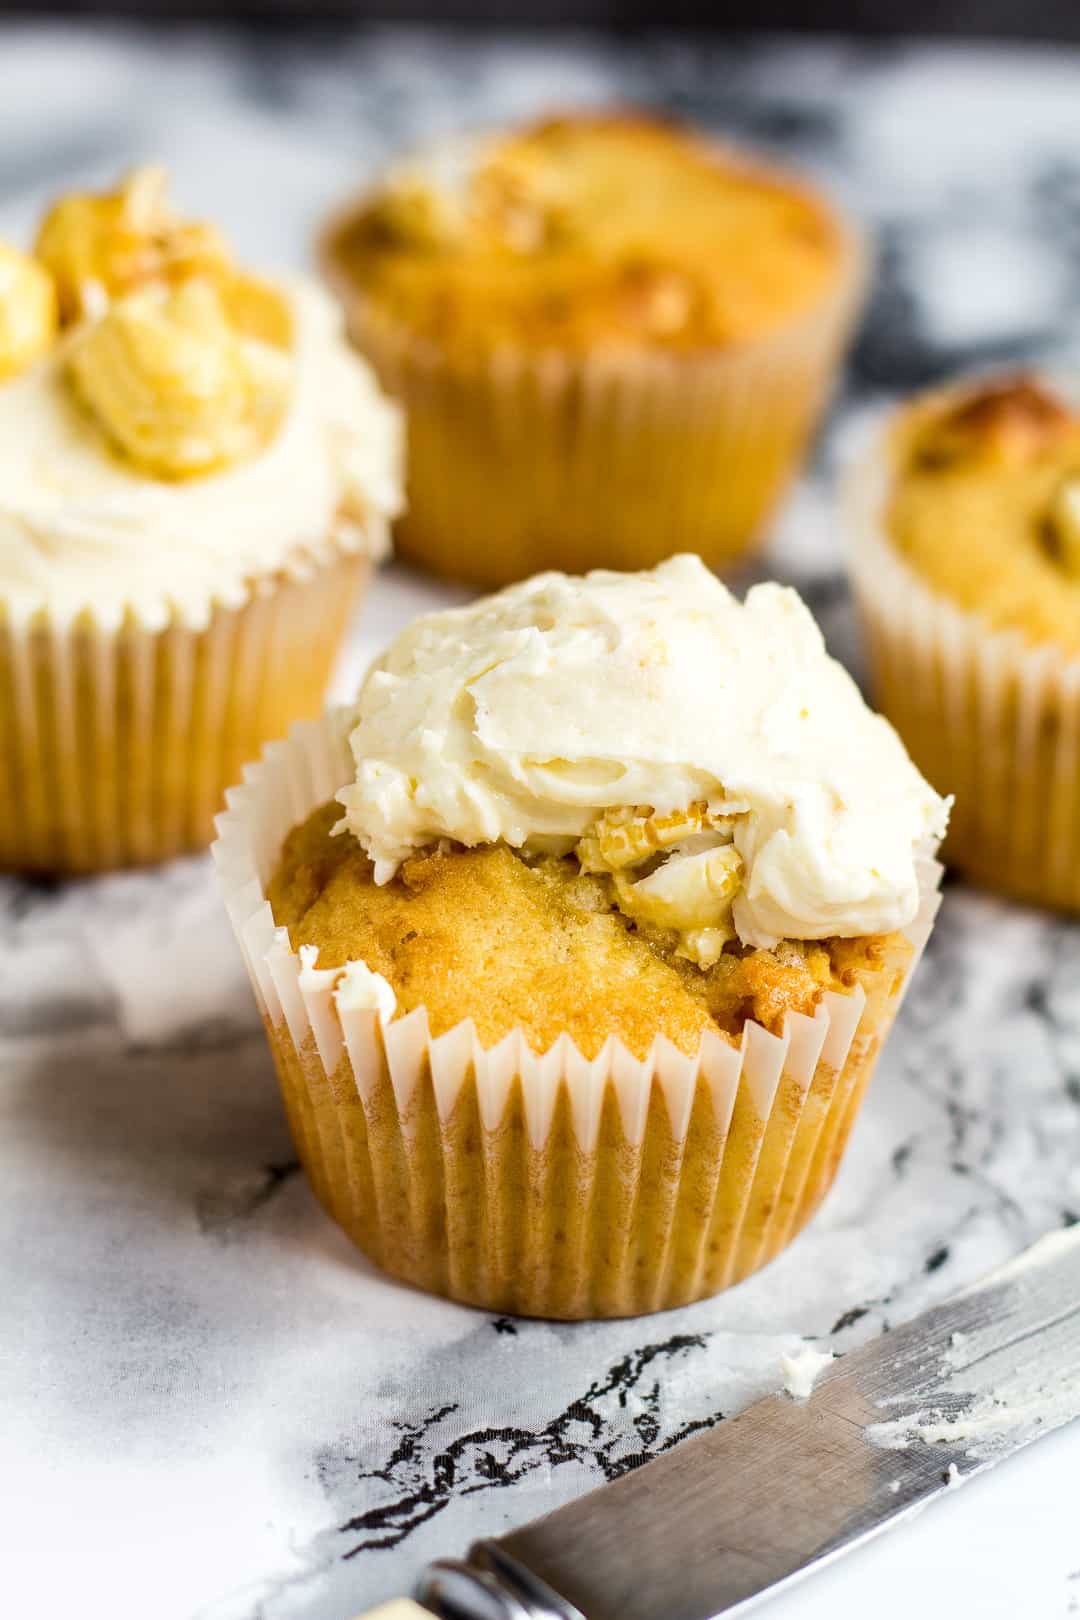 Toffee Popcorn Cupcakes- Deliciously moist and fluffy vanilla cupcakes stuffed full of toffee popcorn, and topped with a creamy buttercream frosting with popcorn bits! | marshasbakingaddiction.com | @marshasbakeblog